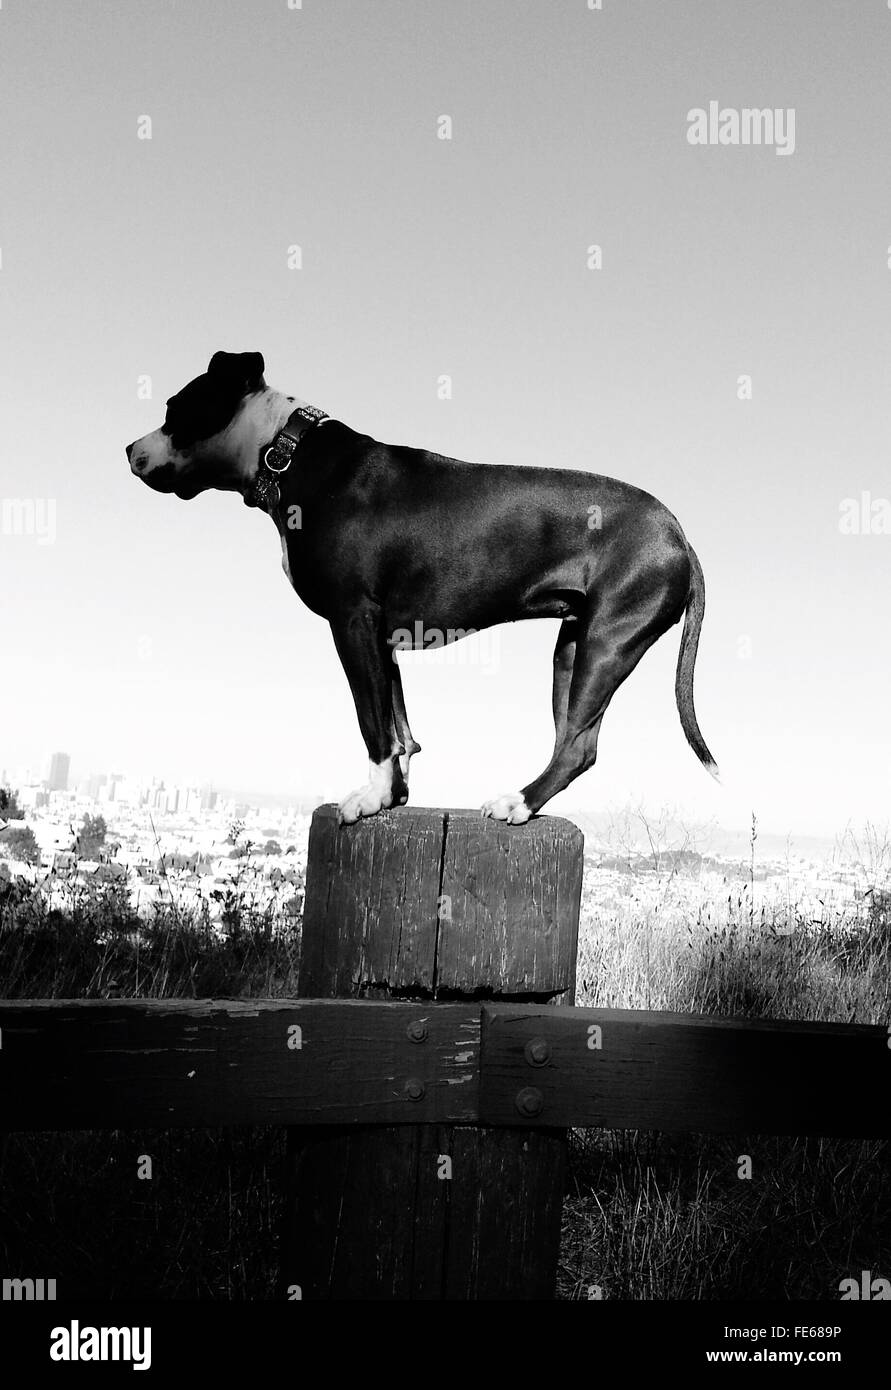 Side Profile Of Dog Standing On Wooden Post - Stock Image